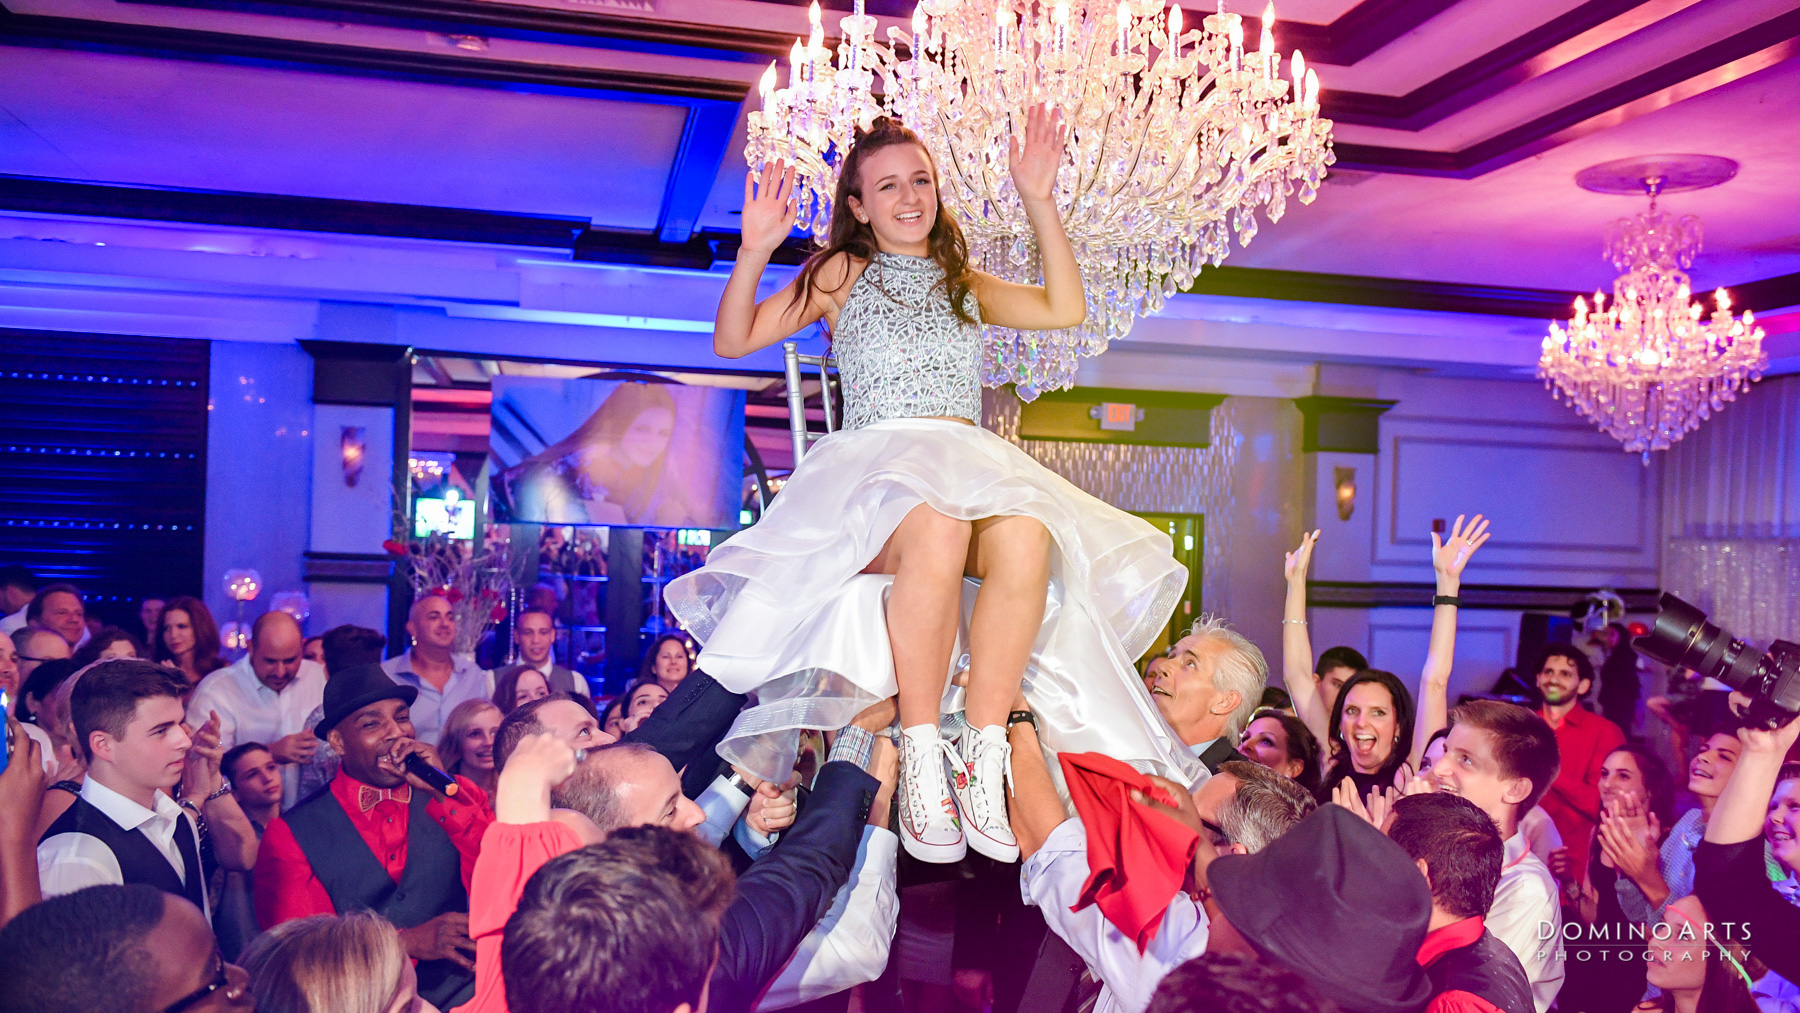 hora and party pictures at Temple Beth El Mitzvah, Boca Raton Mitzvah